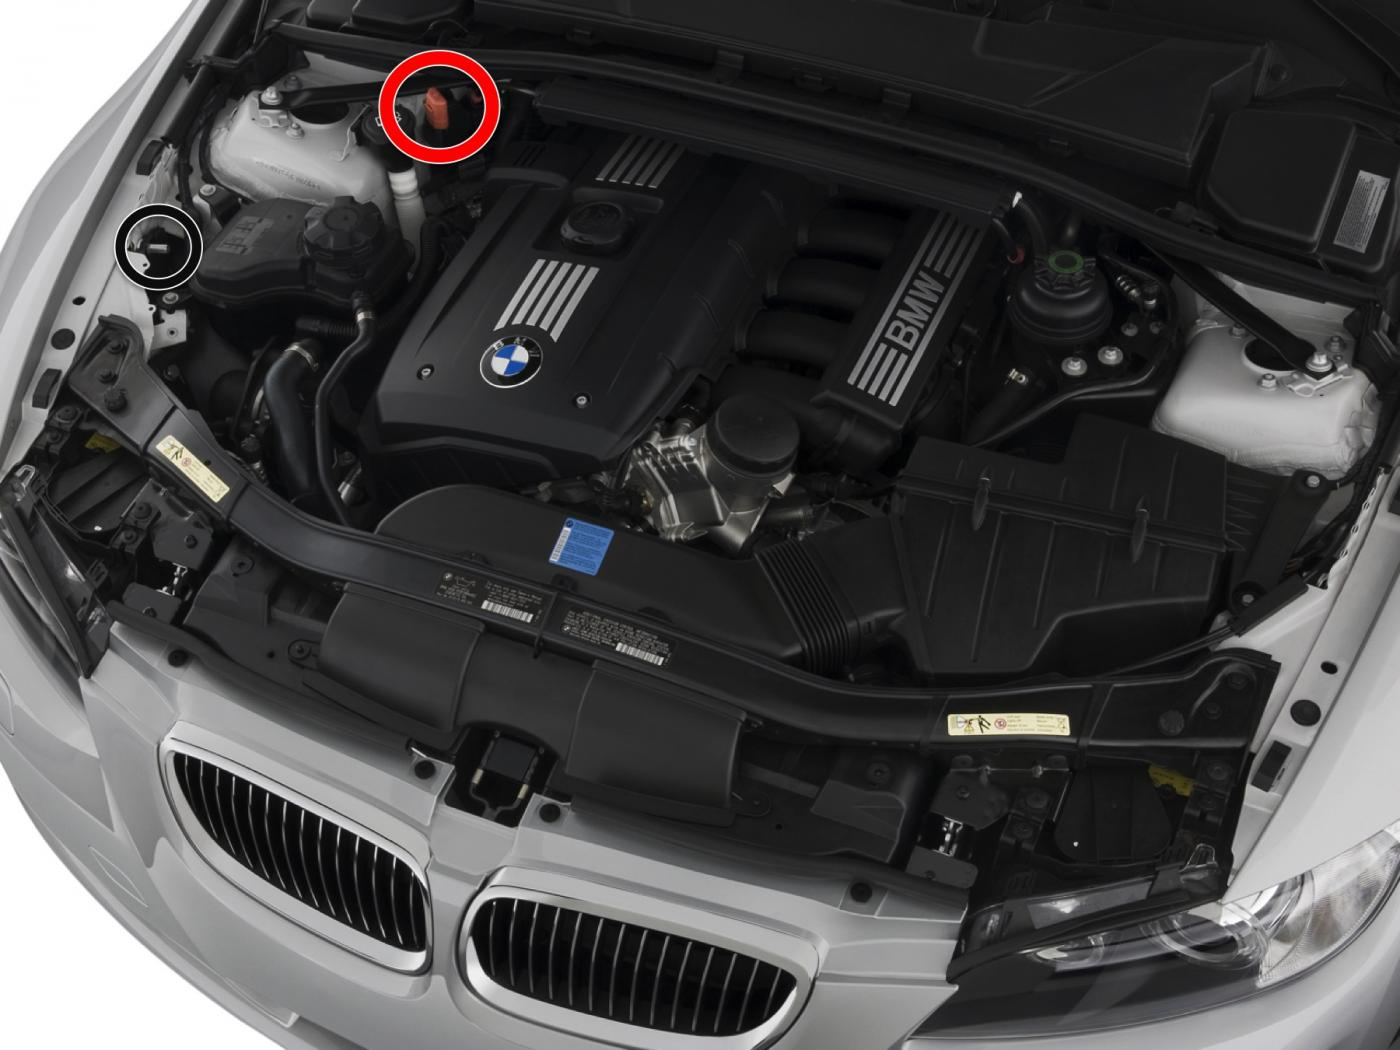 Bmw Z4 Motor Diagram Trusted Wiring Engine Cant Get In To The Trunk Need Help Page 3 Interior